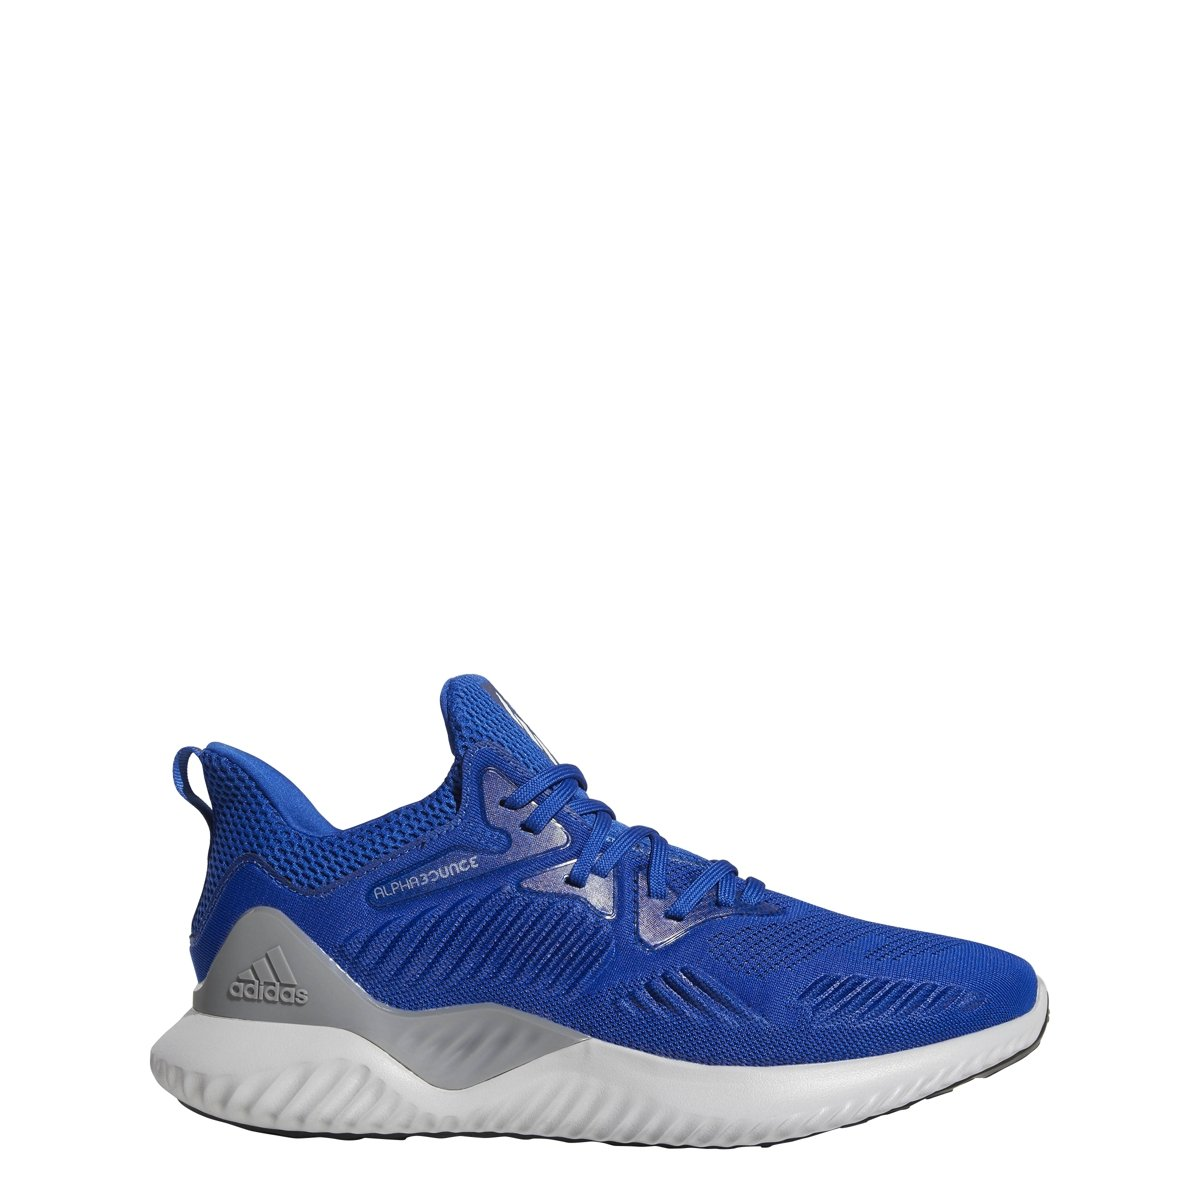 adidas Men's Alphabounce Beyond Team Running Shoe, Collegiate Royal/White/Black, 8 M US